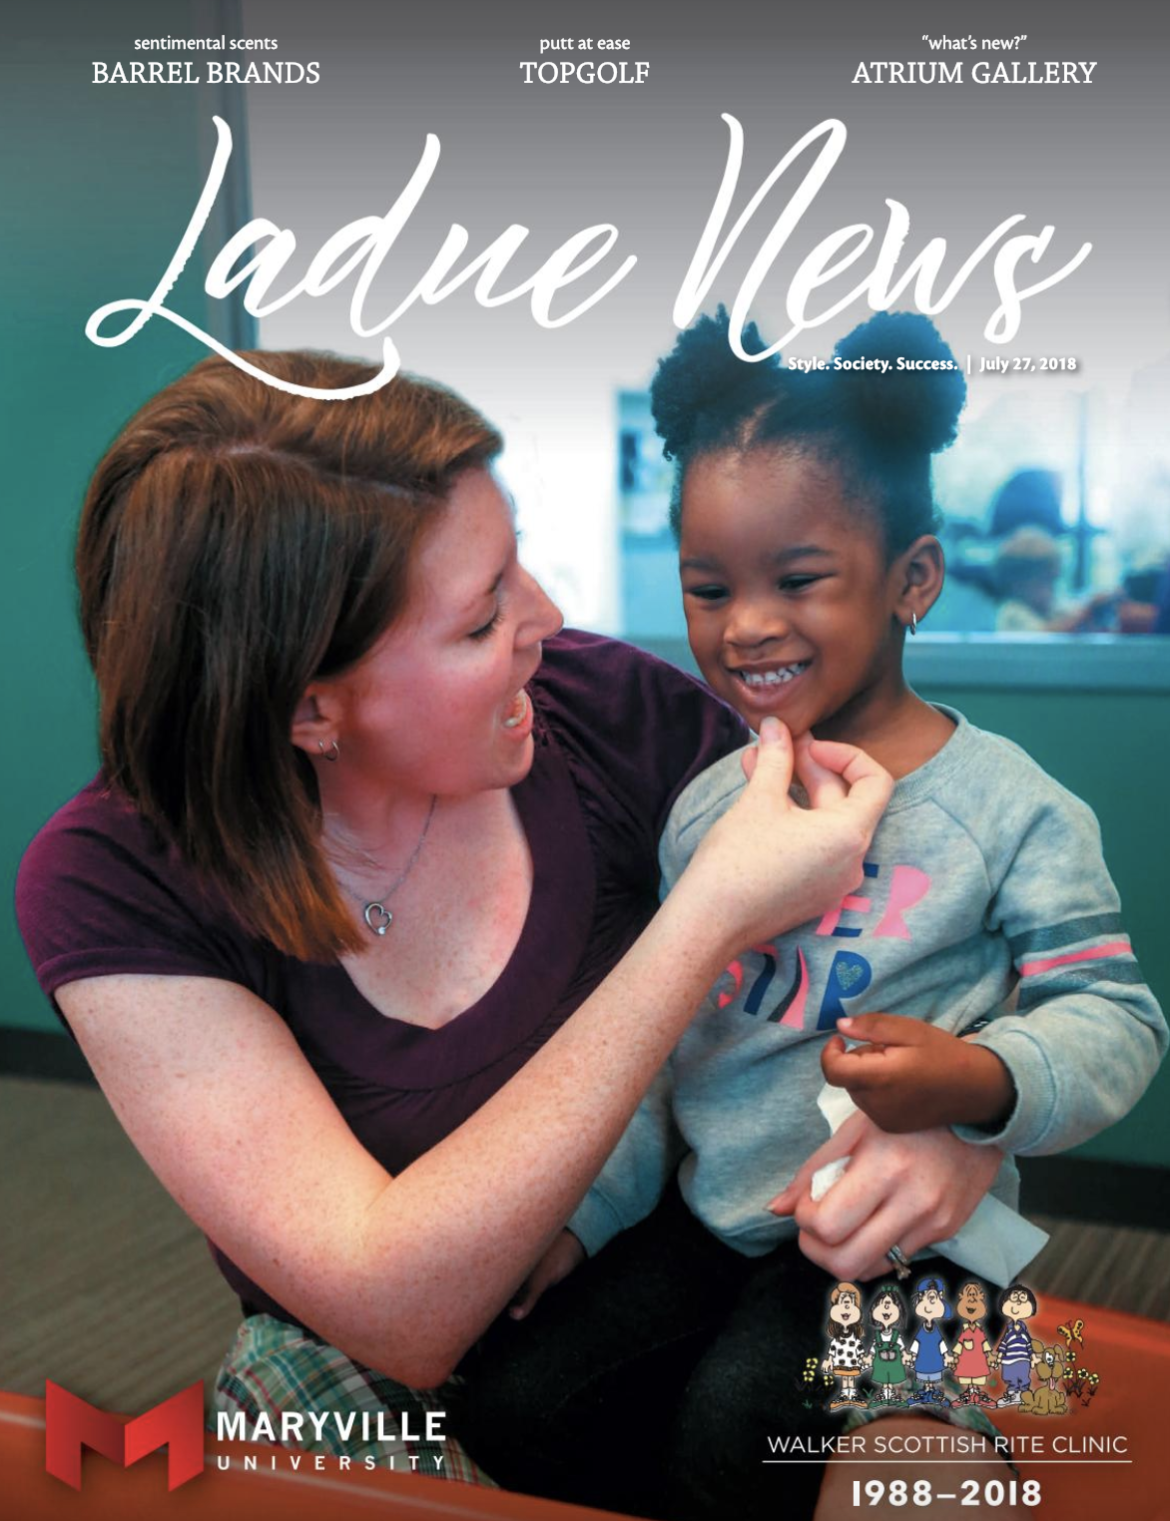 Walker Scottish Rite Clinic featured in Ladue News